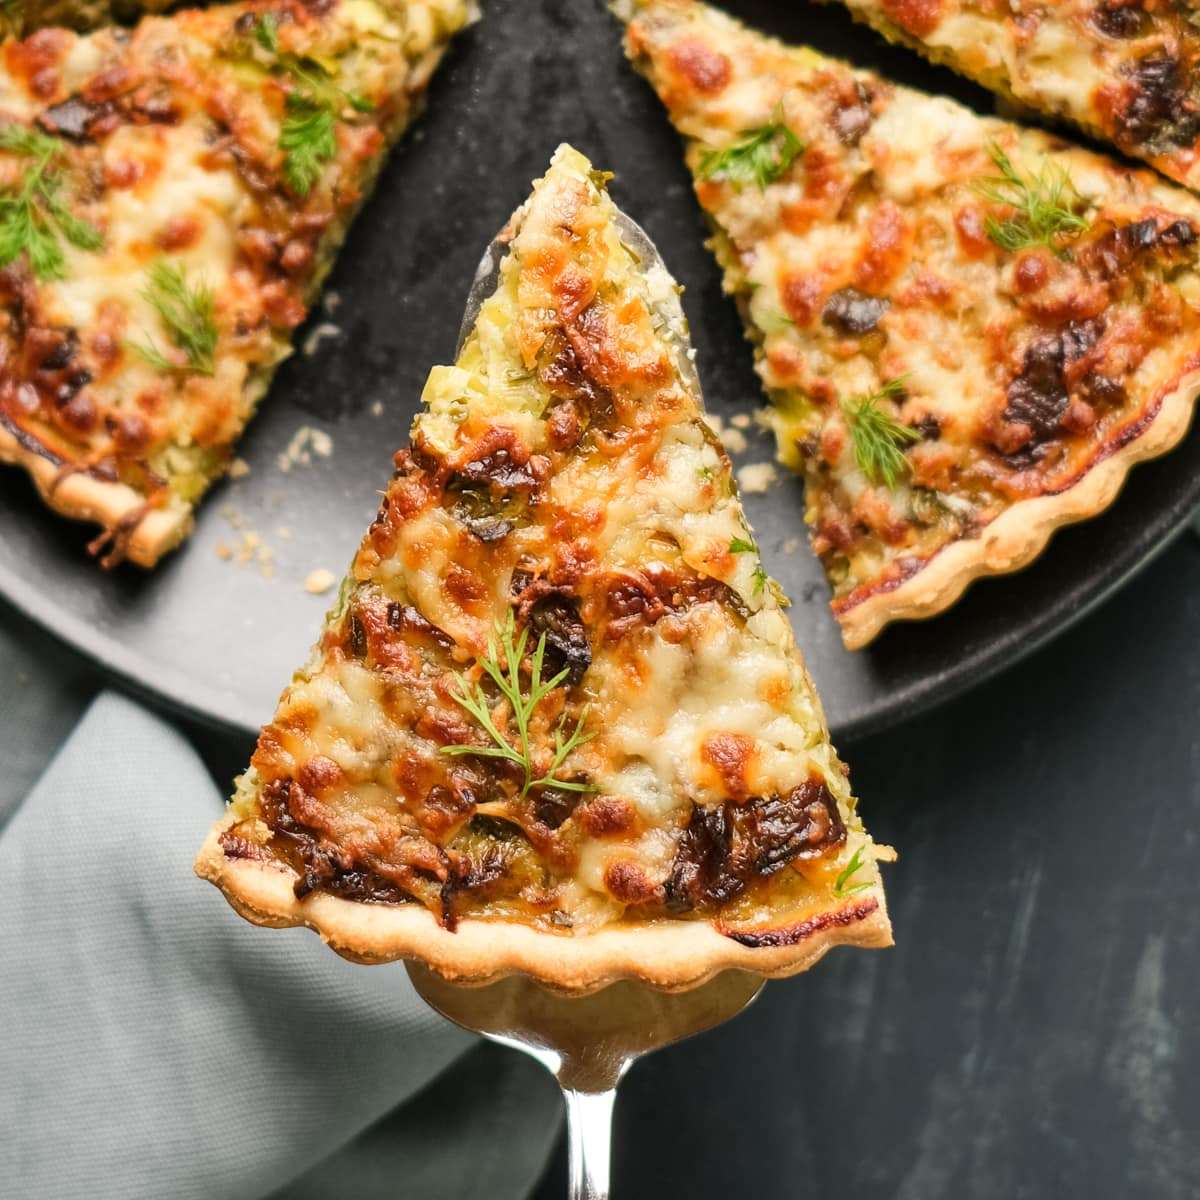 A slice of vegetarian quiche on a spatula, the rest is on a black plate on a dark background.